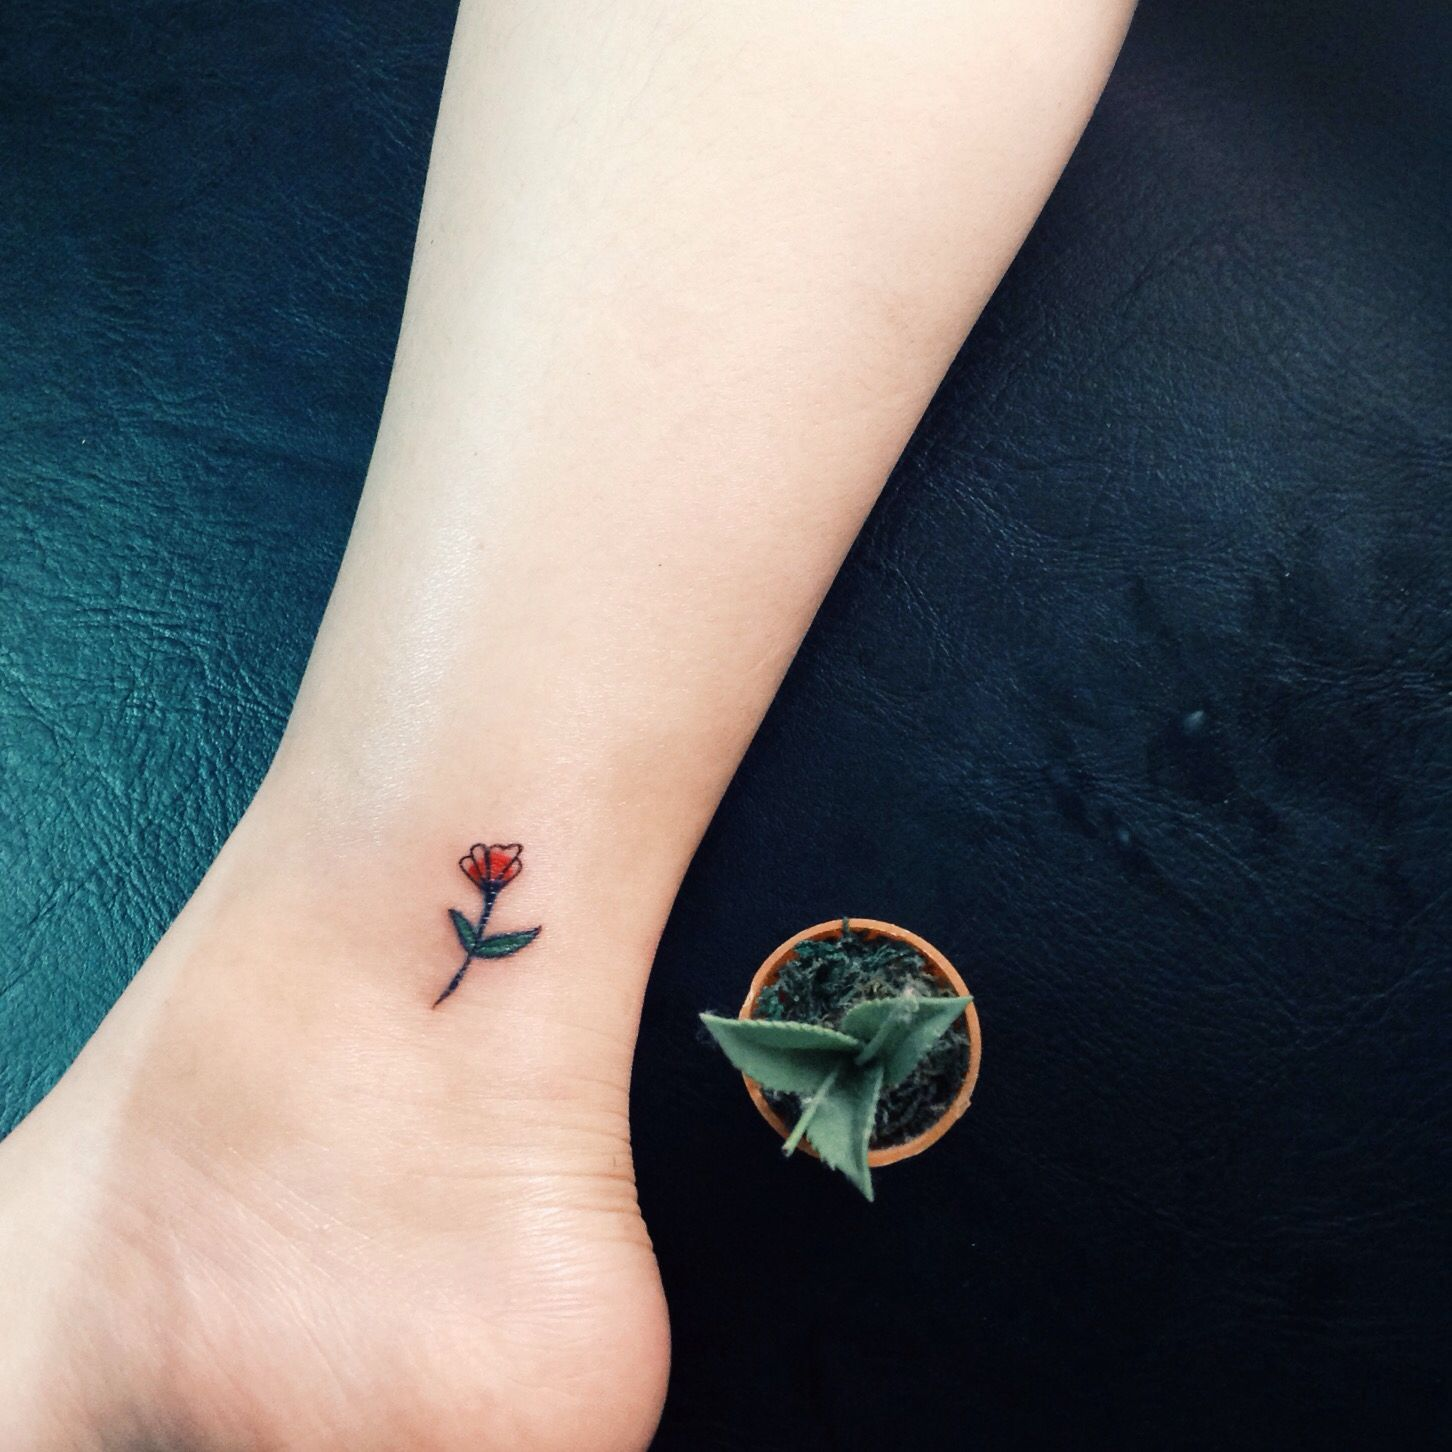 40 Cute And Tiny Floral Tattoos For Women Tattooblend Pretty Flower Tattoos Tiny Flower Tattoos Single Rose Tattoos